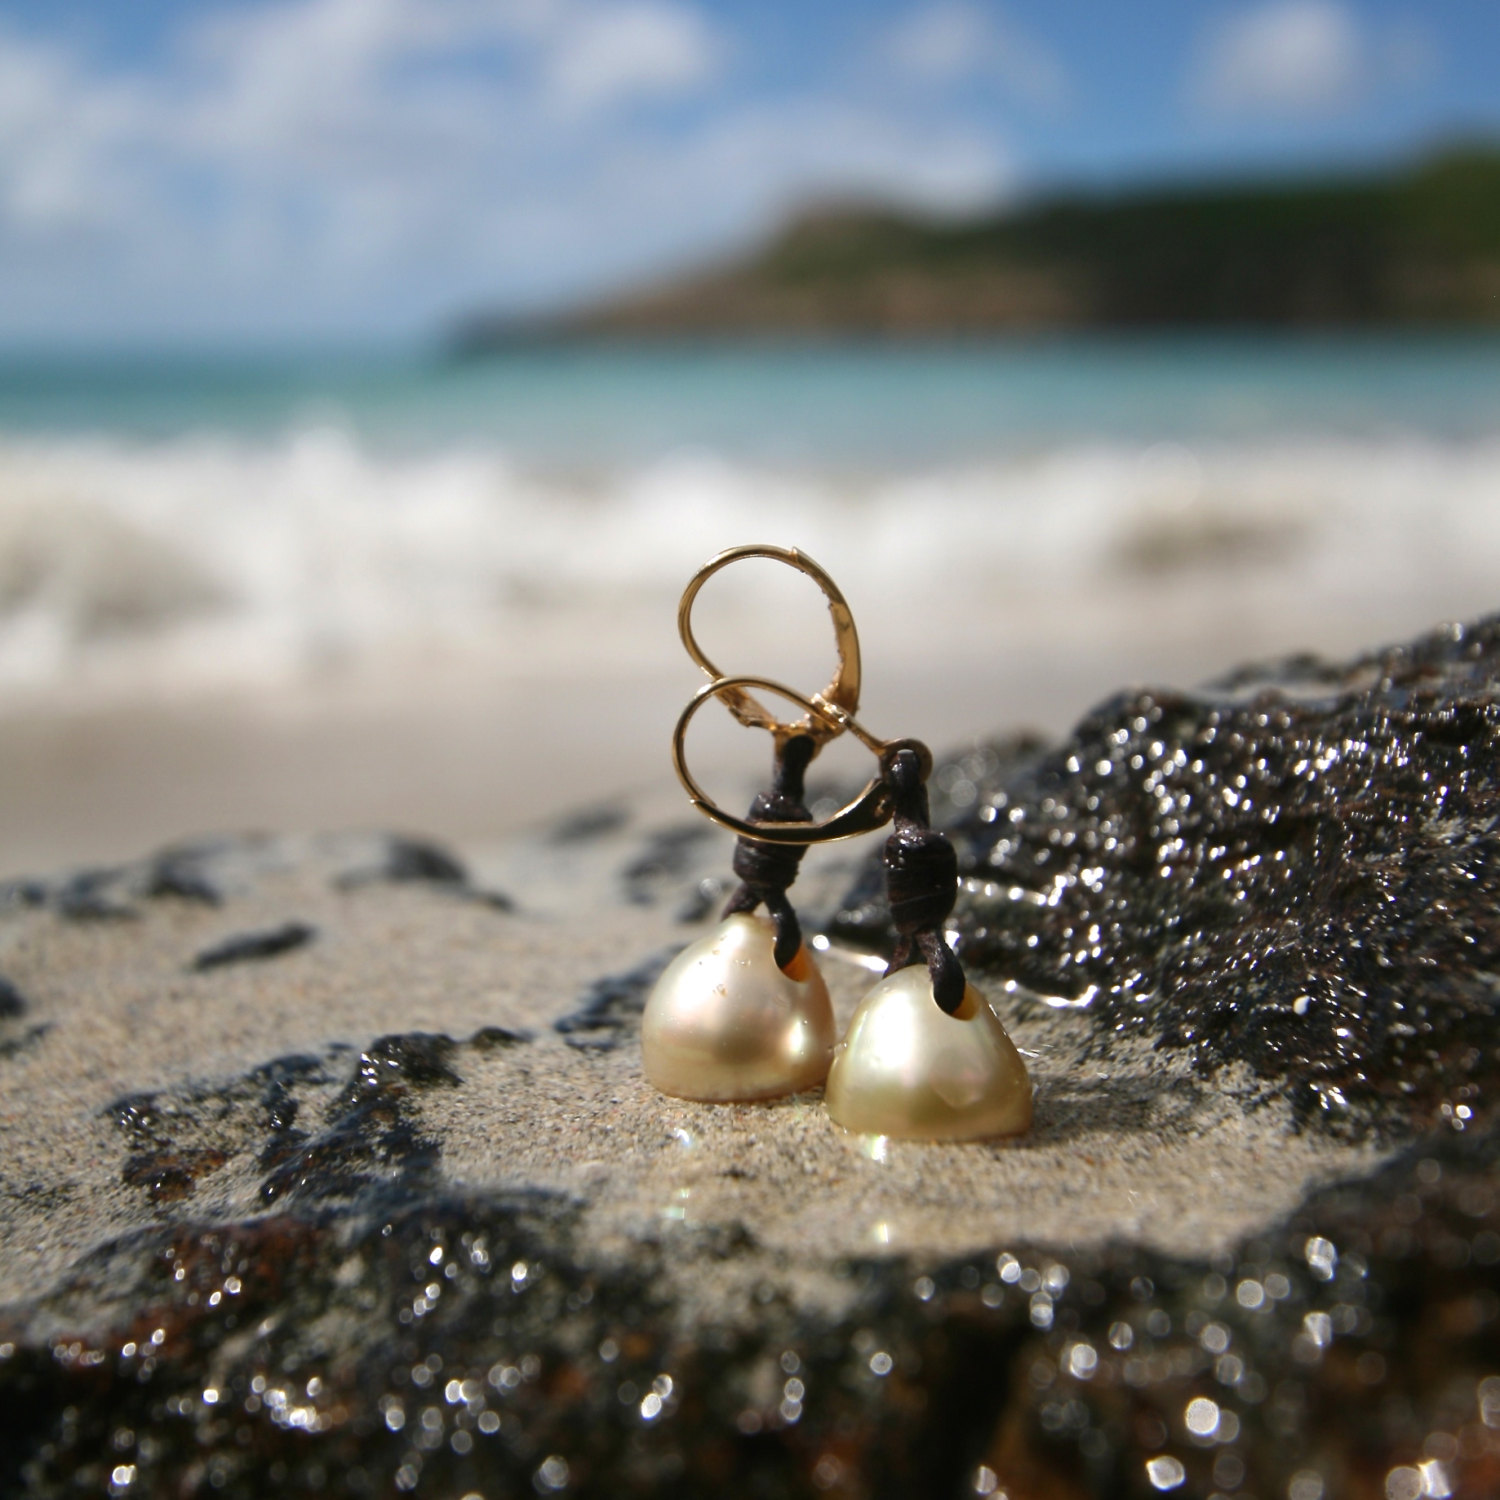 Australian cultured gold pearls drops earings, leather and gold st barths design, leather jewelry, gypsy, seaside, hippiechic & bohemian